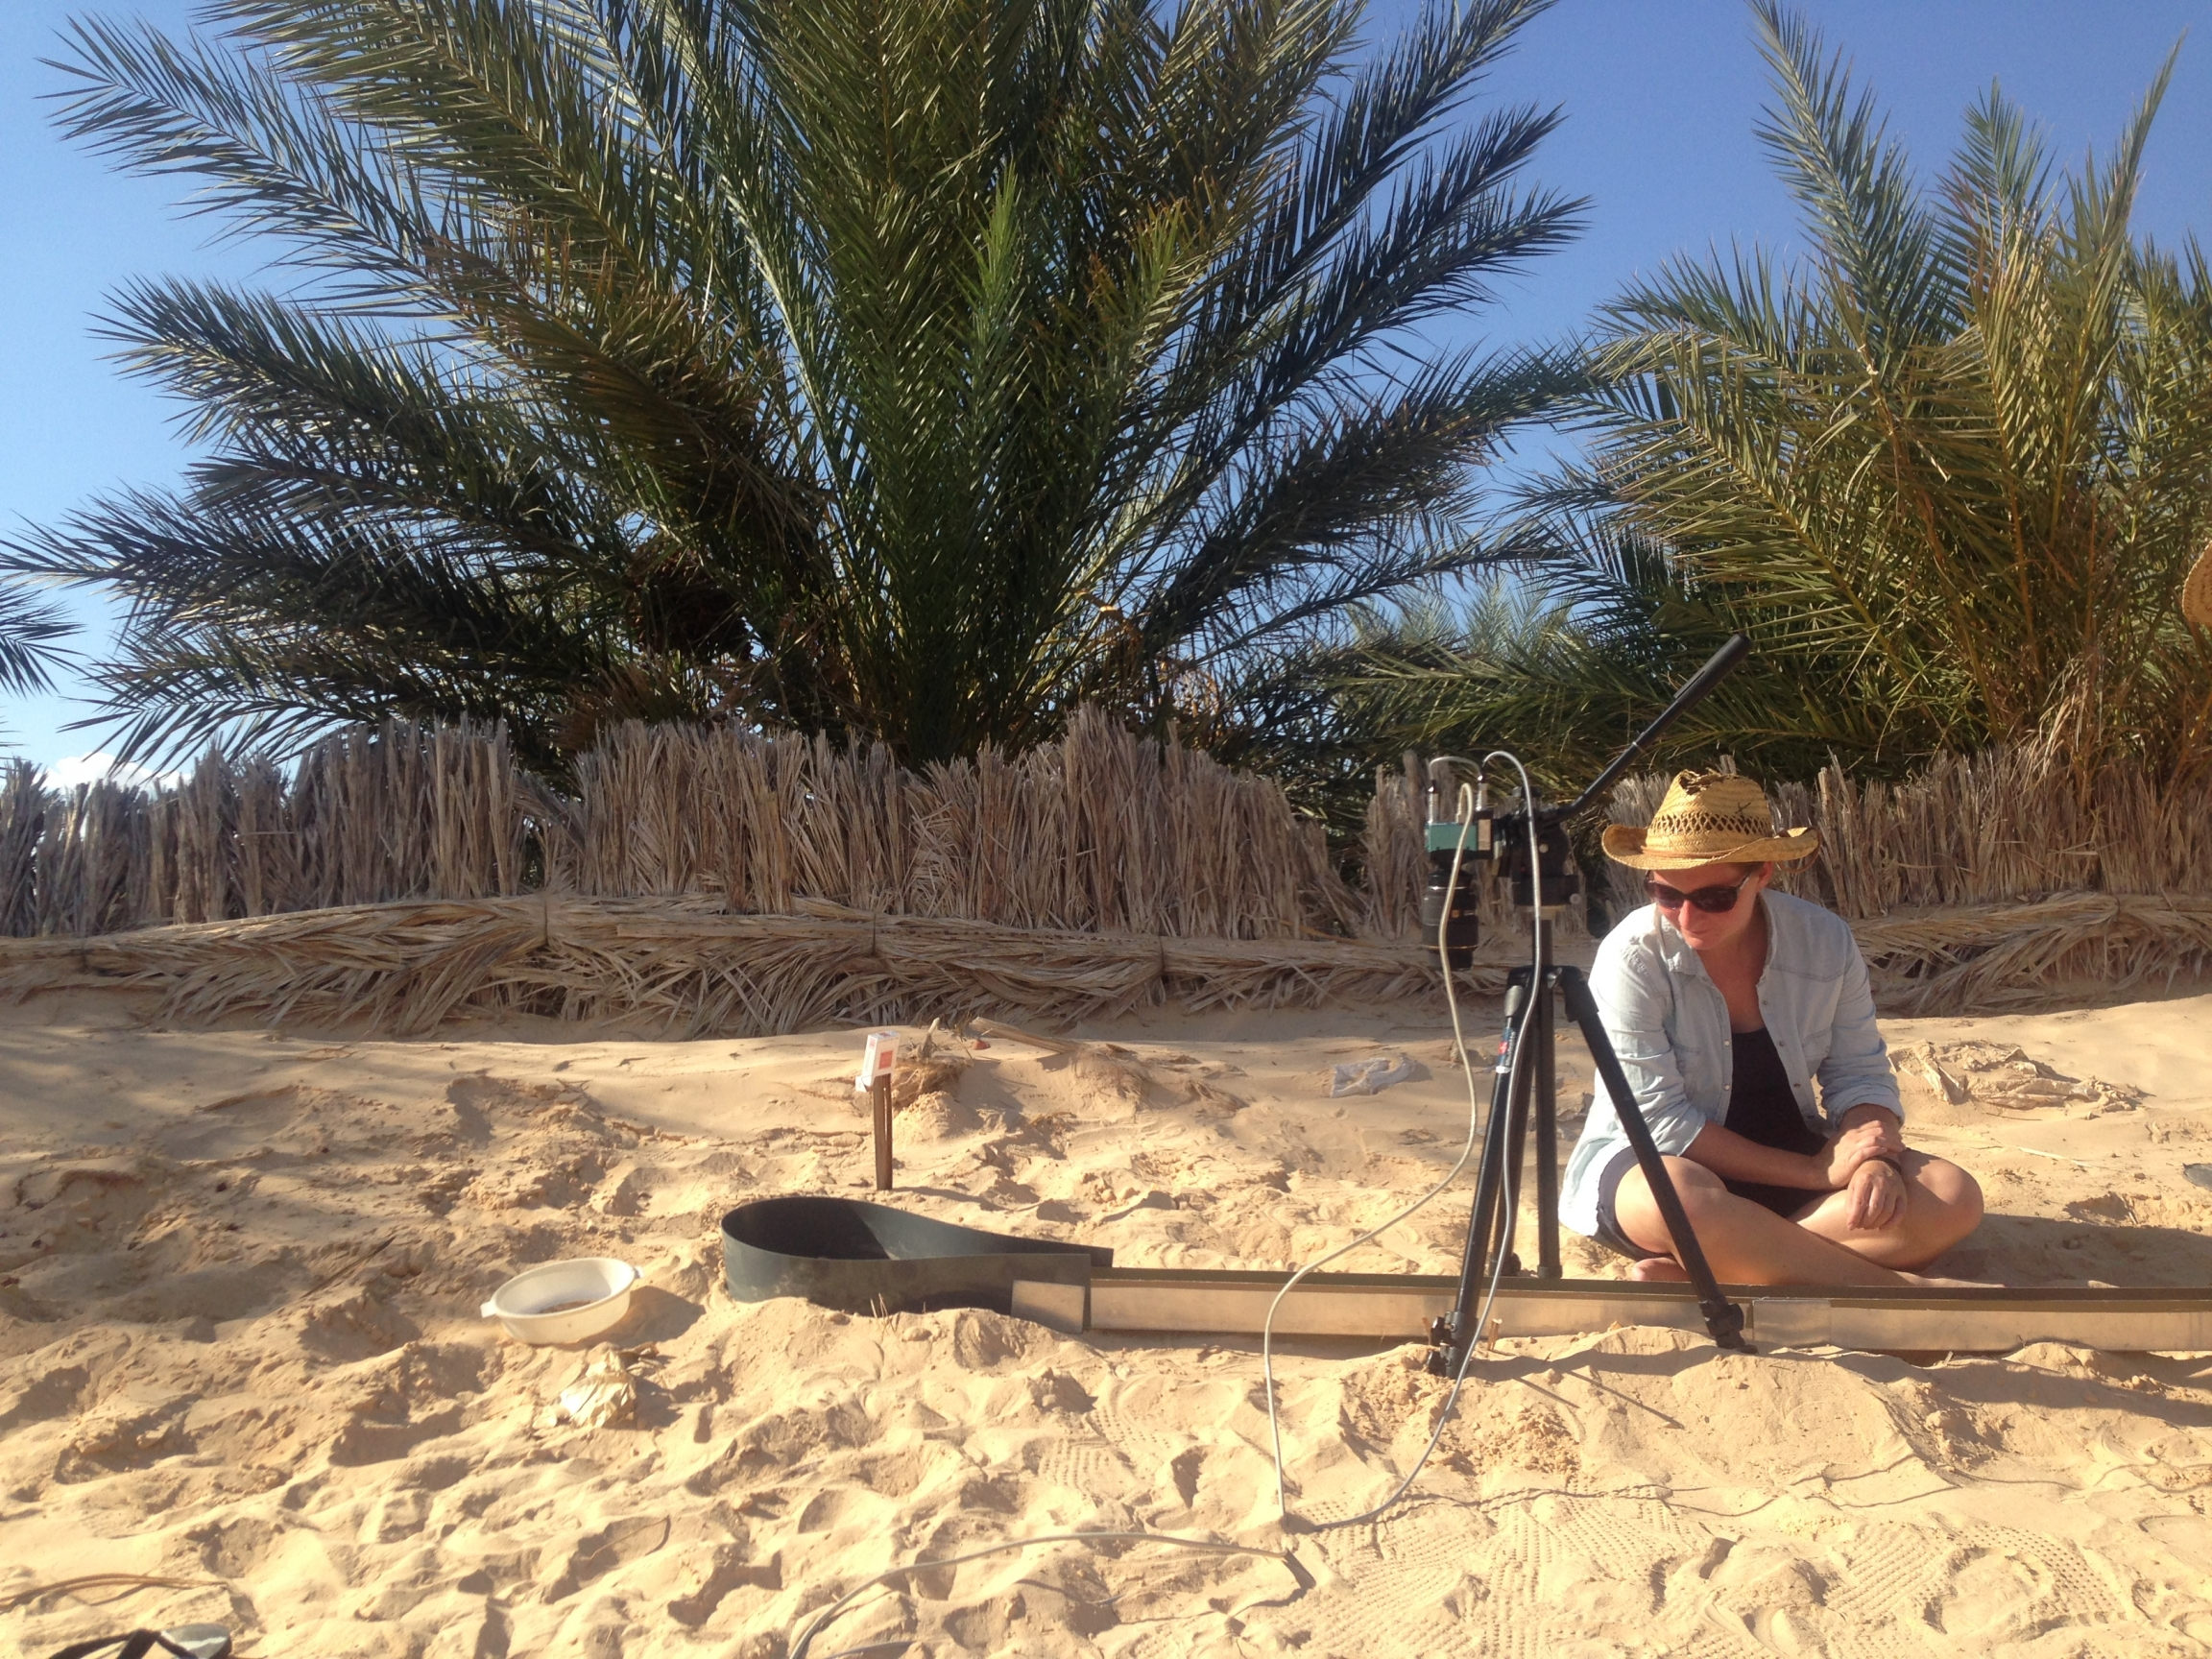 A person wearing a sun hat sets up a metal contraption in the sand.